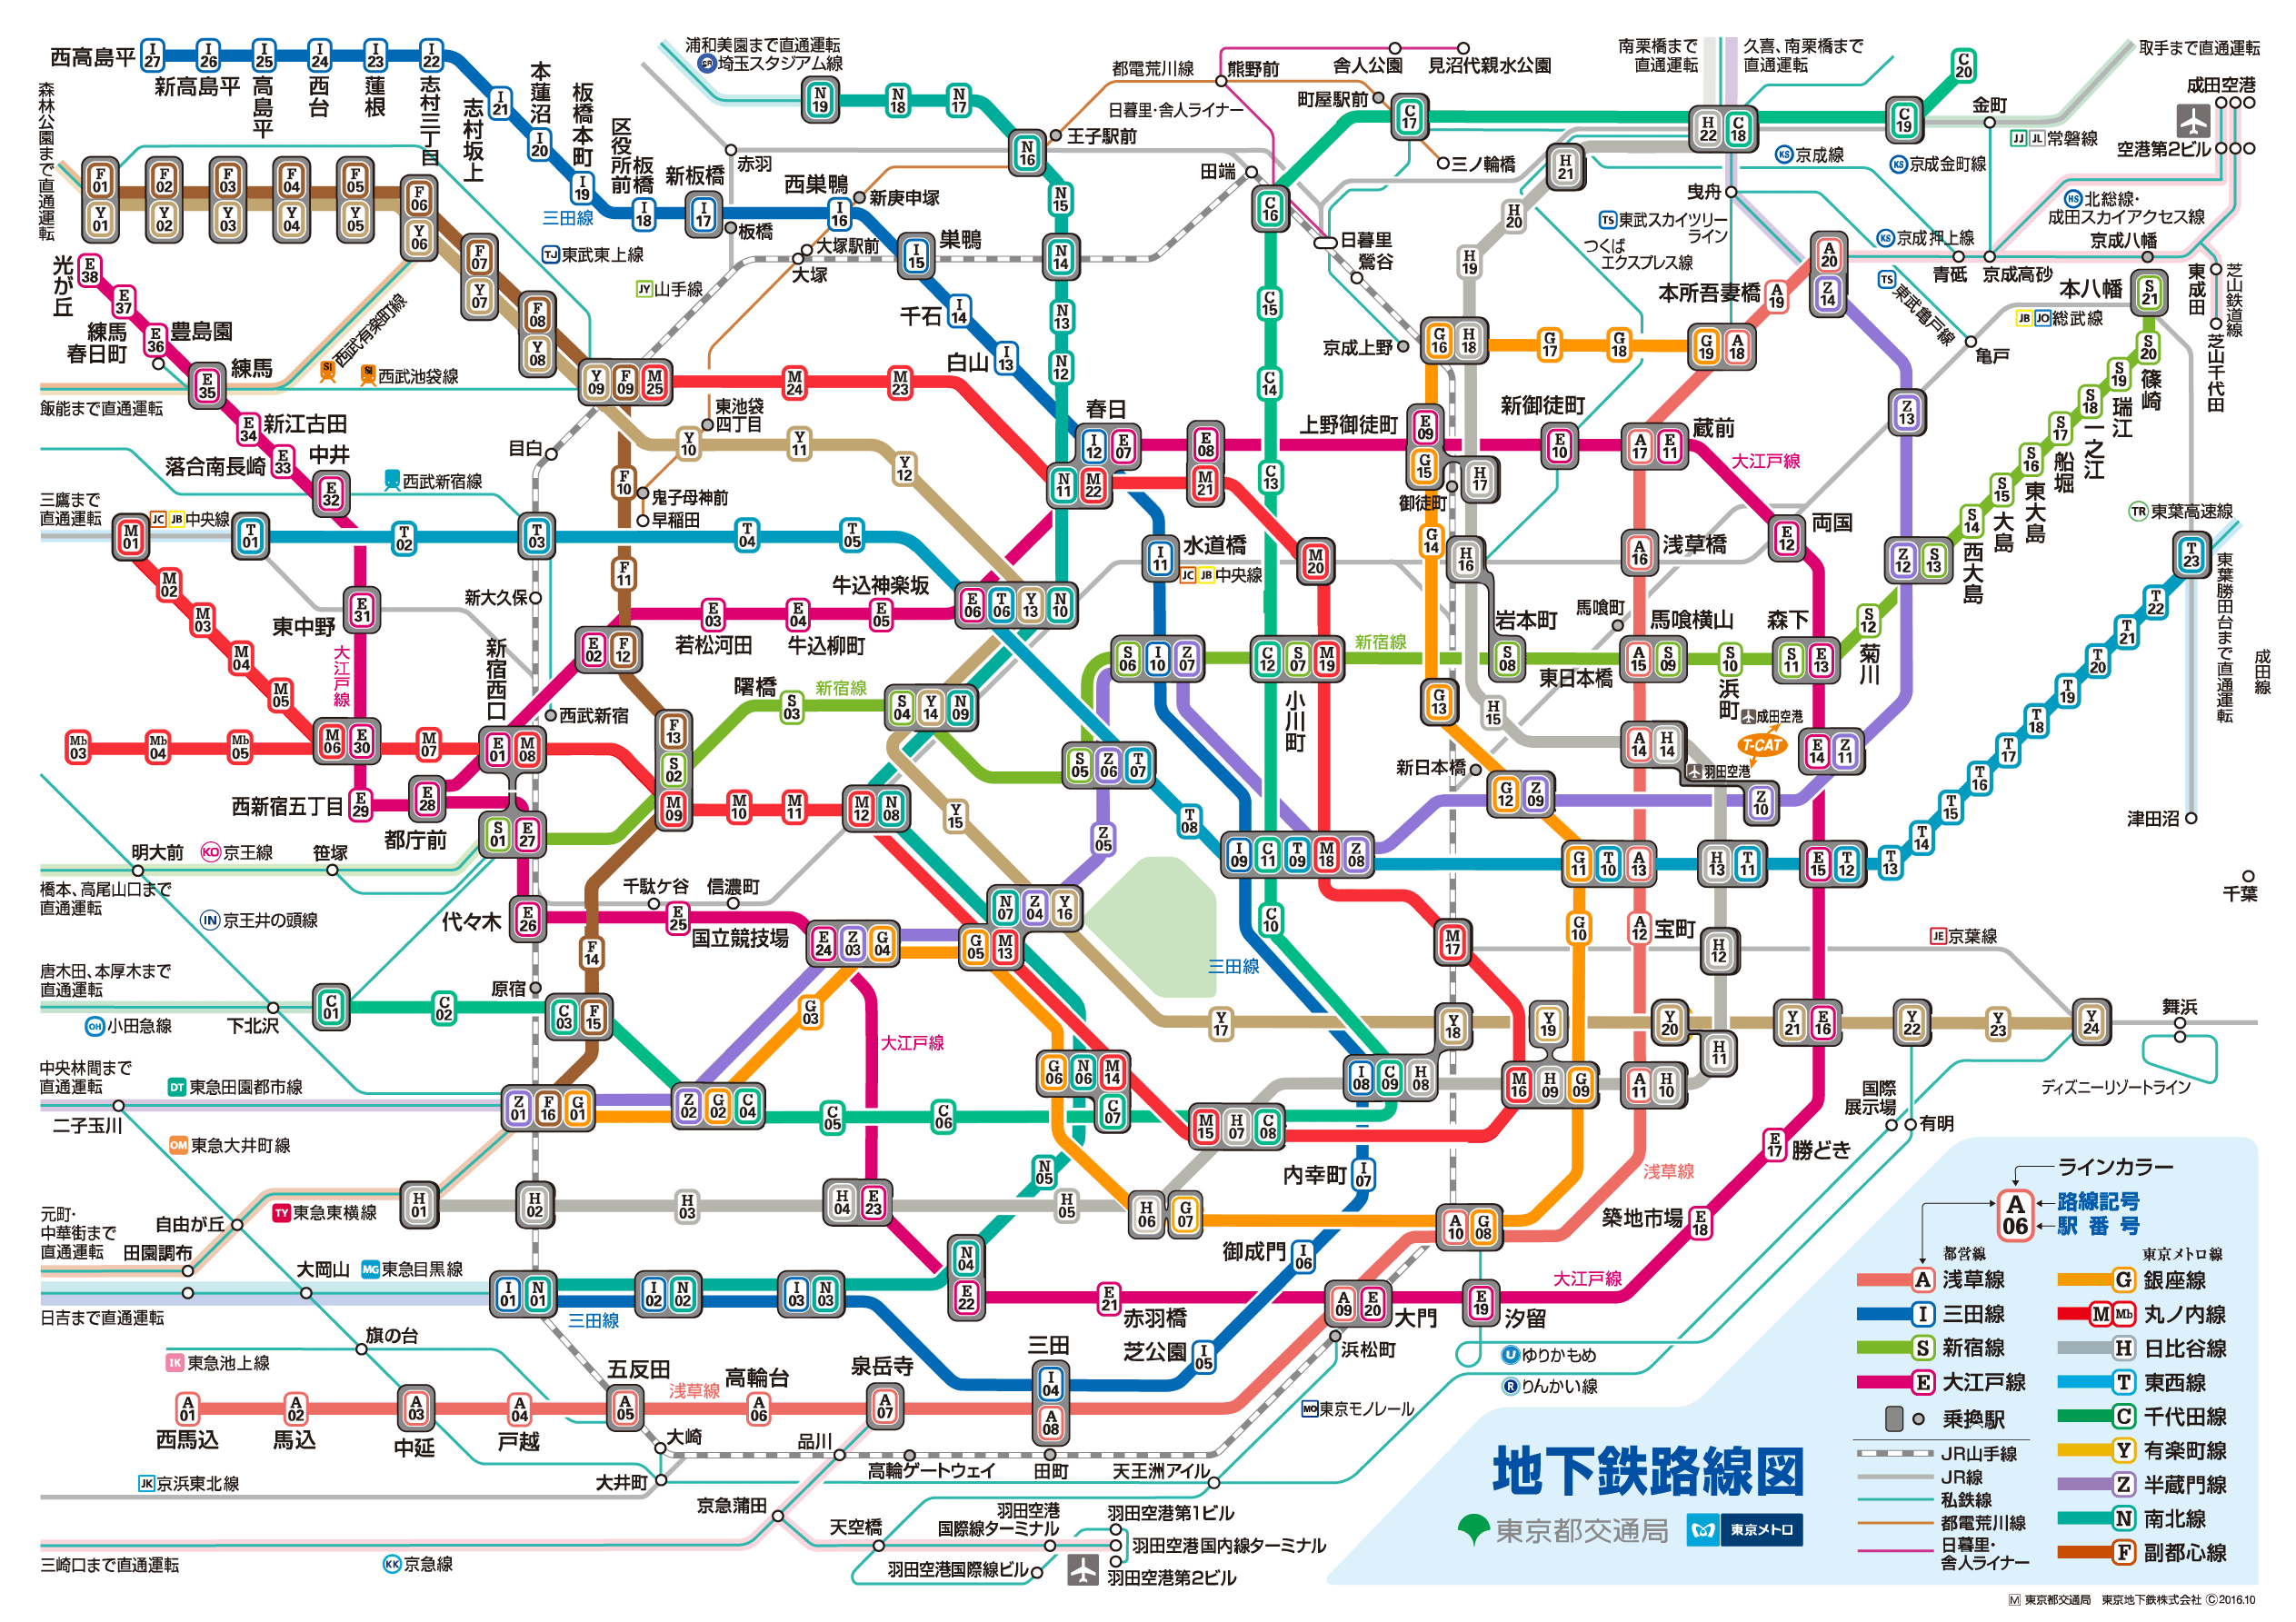 https://www.tokyometro.jp/library/svg_map/img/jp/all.png